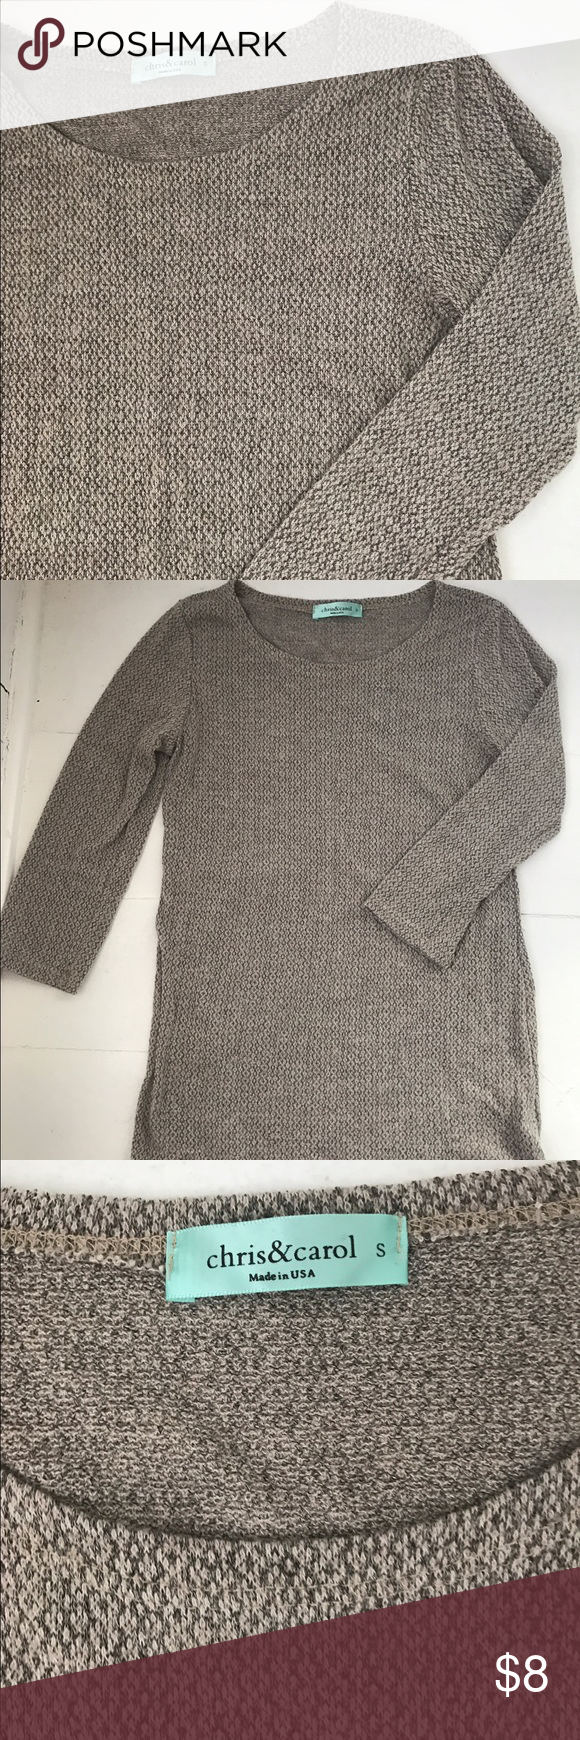 Tan Tunic Sweater | Size S | D, Tops and Sweaters